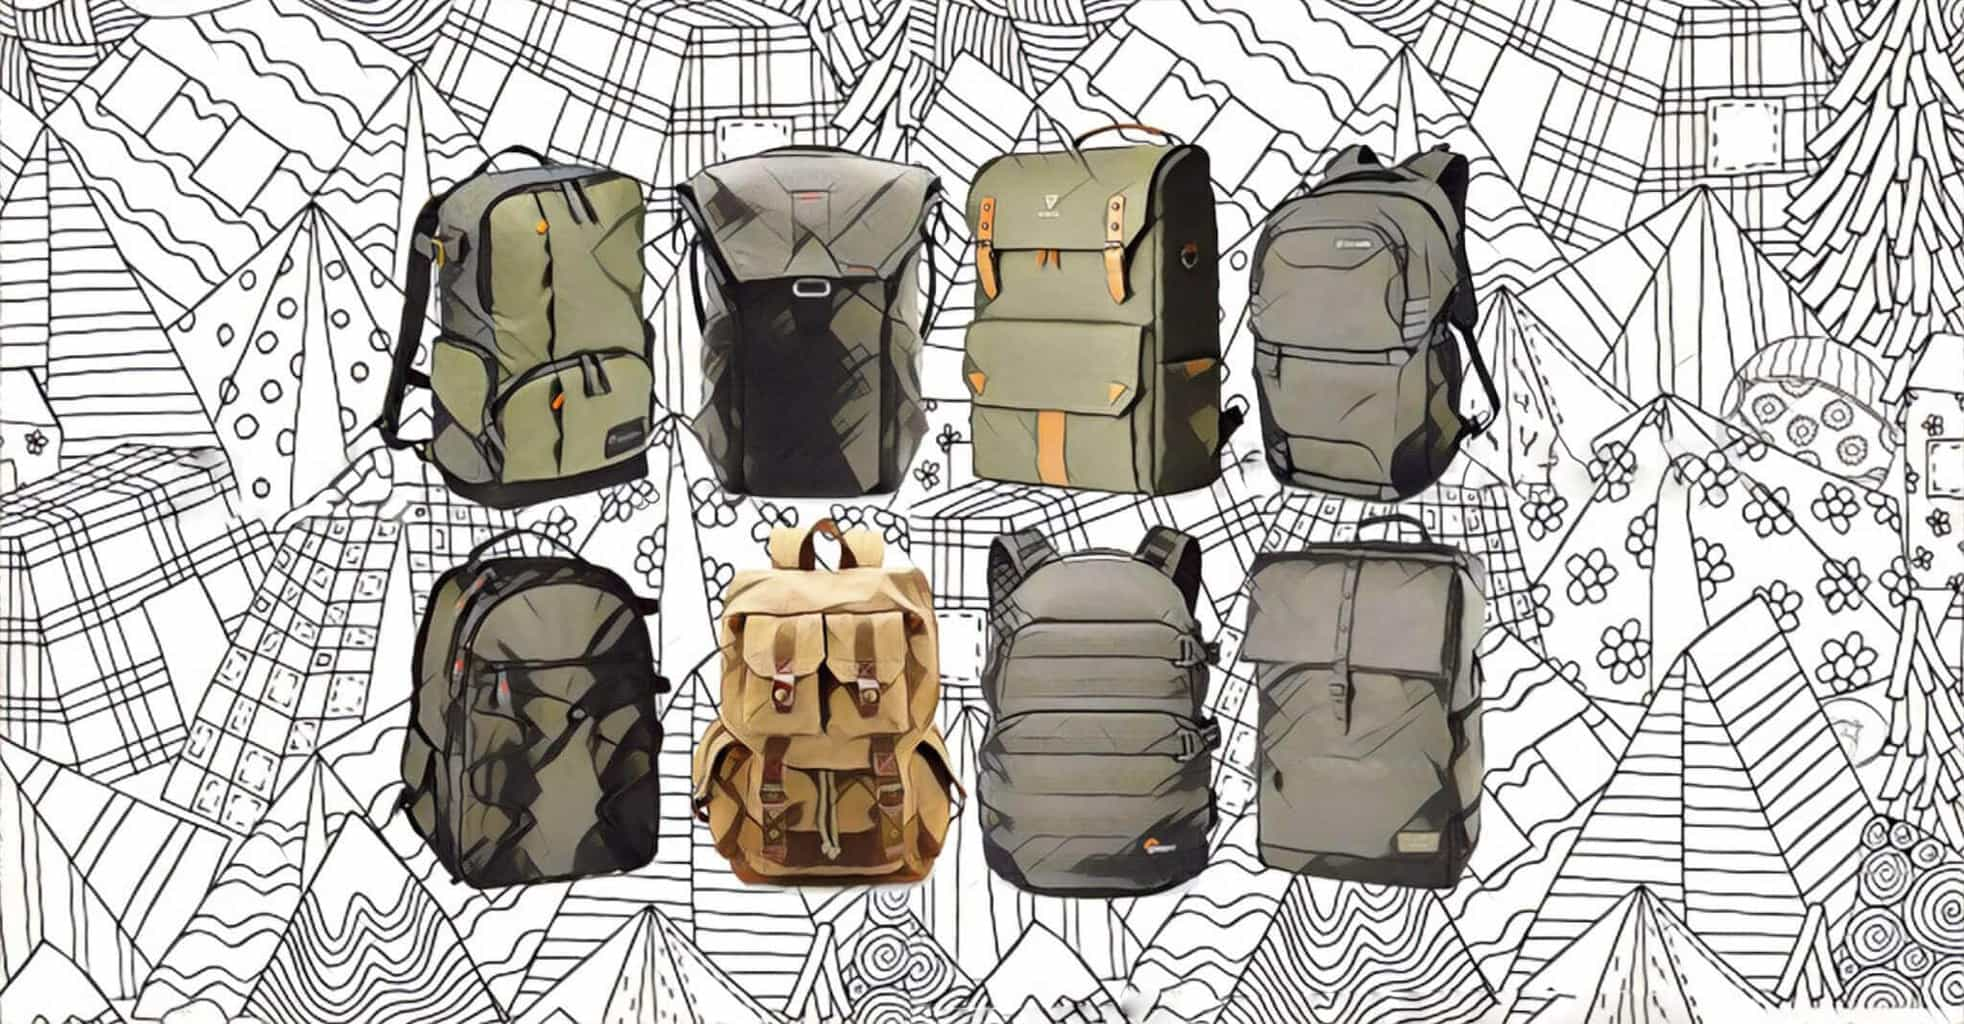 Best Dslr Backpack 2019 Best Camera Backpacks in 2019 + Lowepro Hiking Camera Bag Options